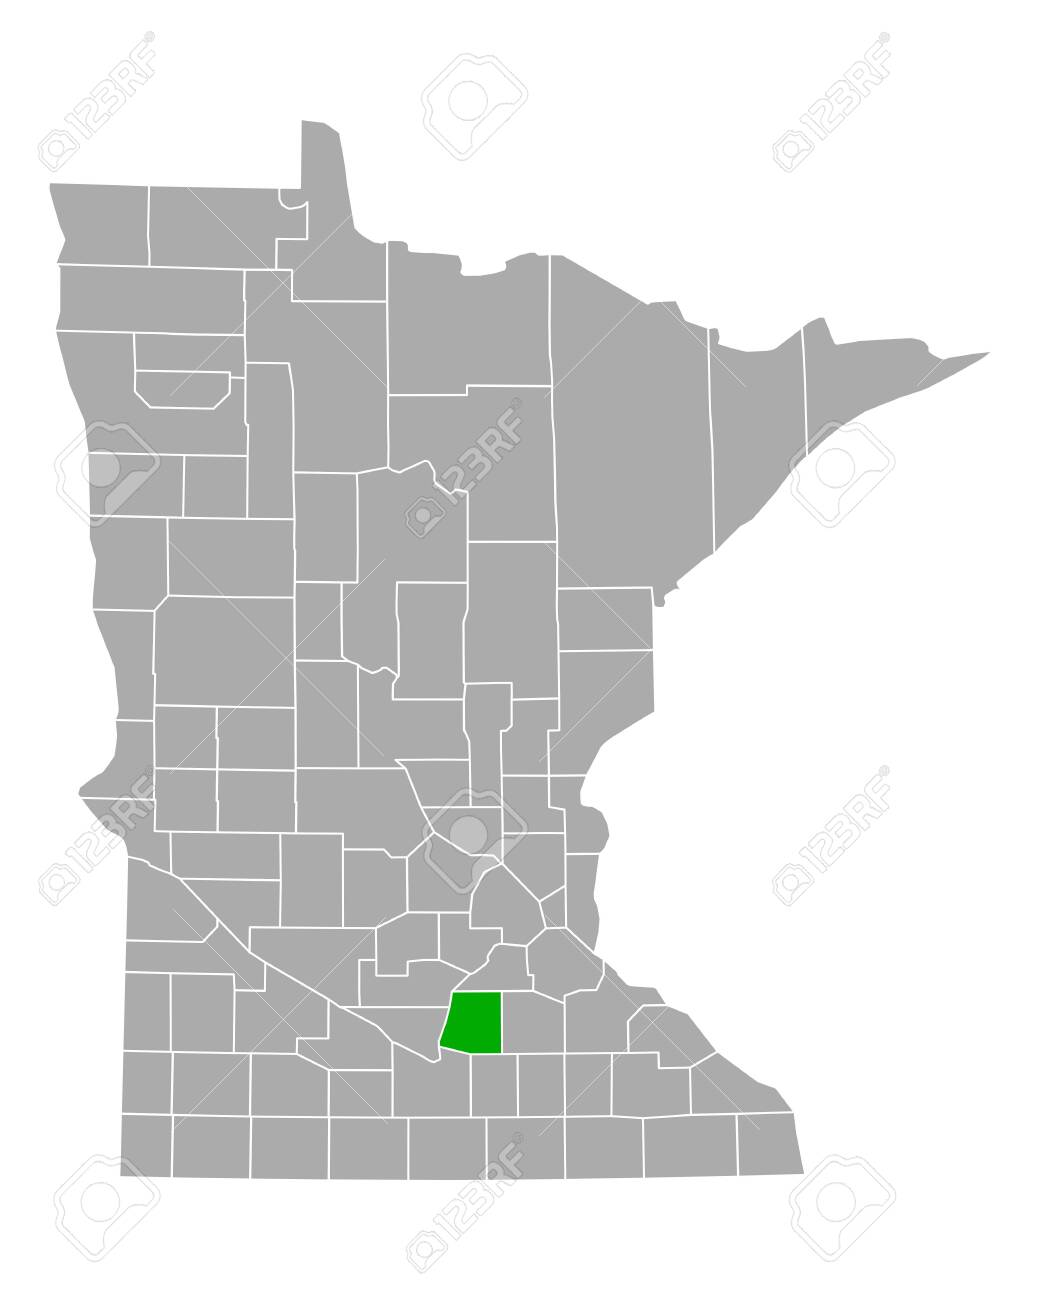 Map of Le Sueur in Minnesota - 150583998